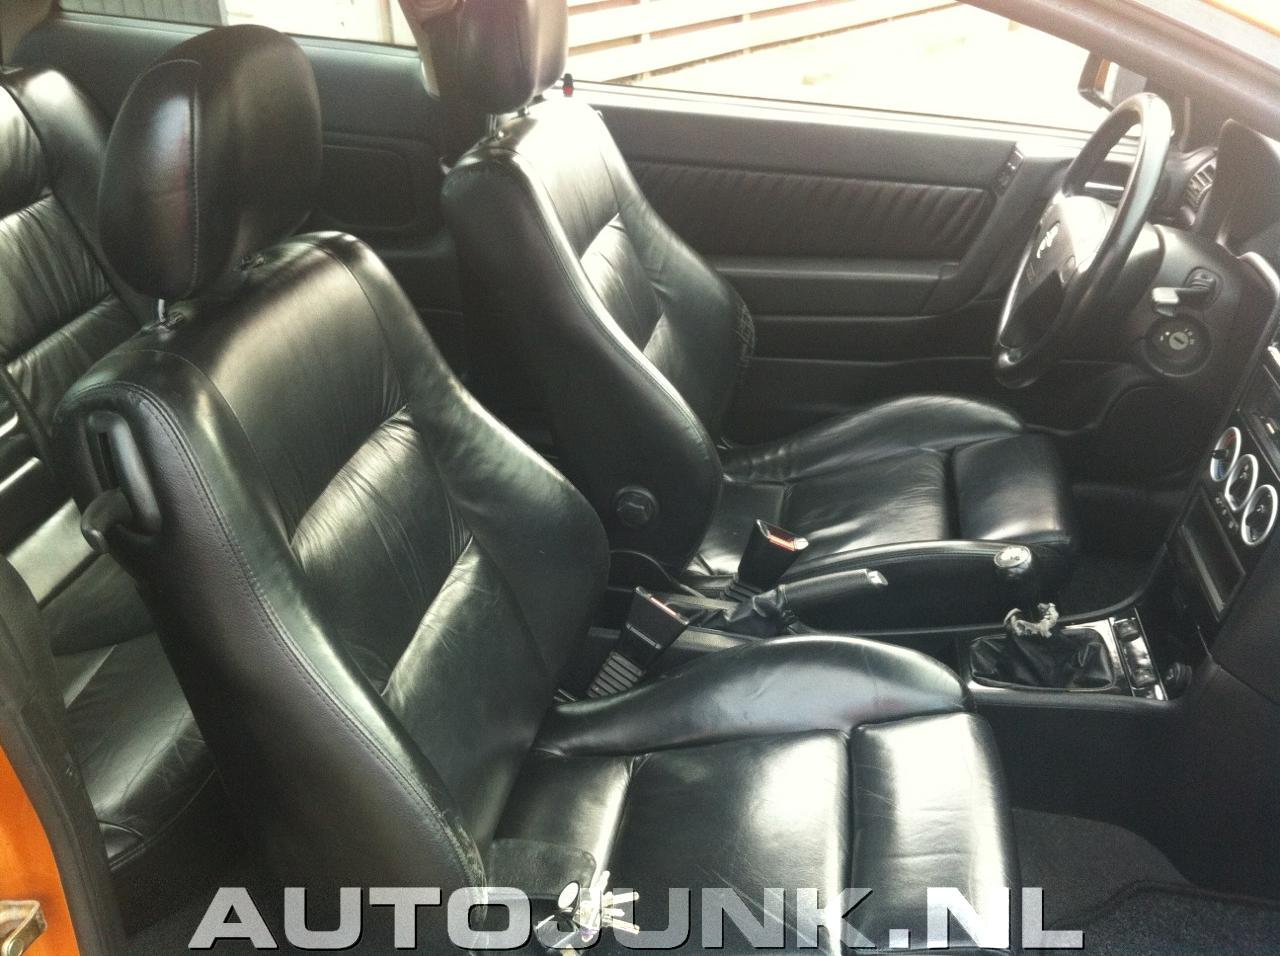 mijn auto opel astra coup 1 8 16v bertone foto 39 s 93120. Black Bedroom Furniture Sets. Home Design Ideas